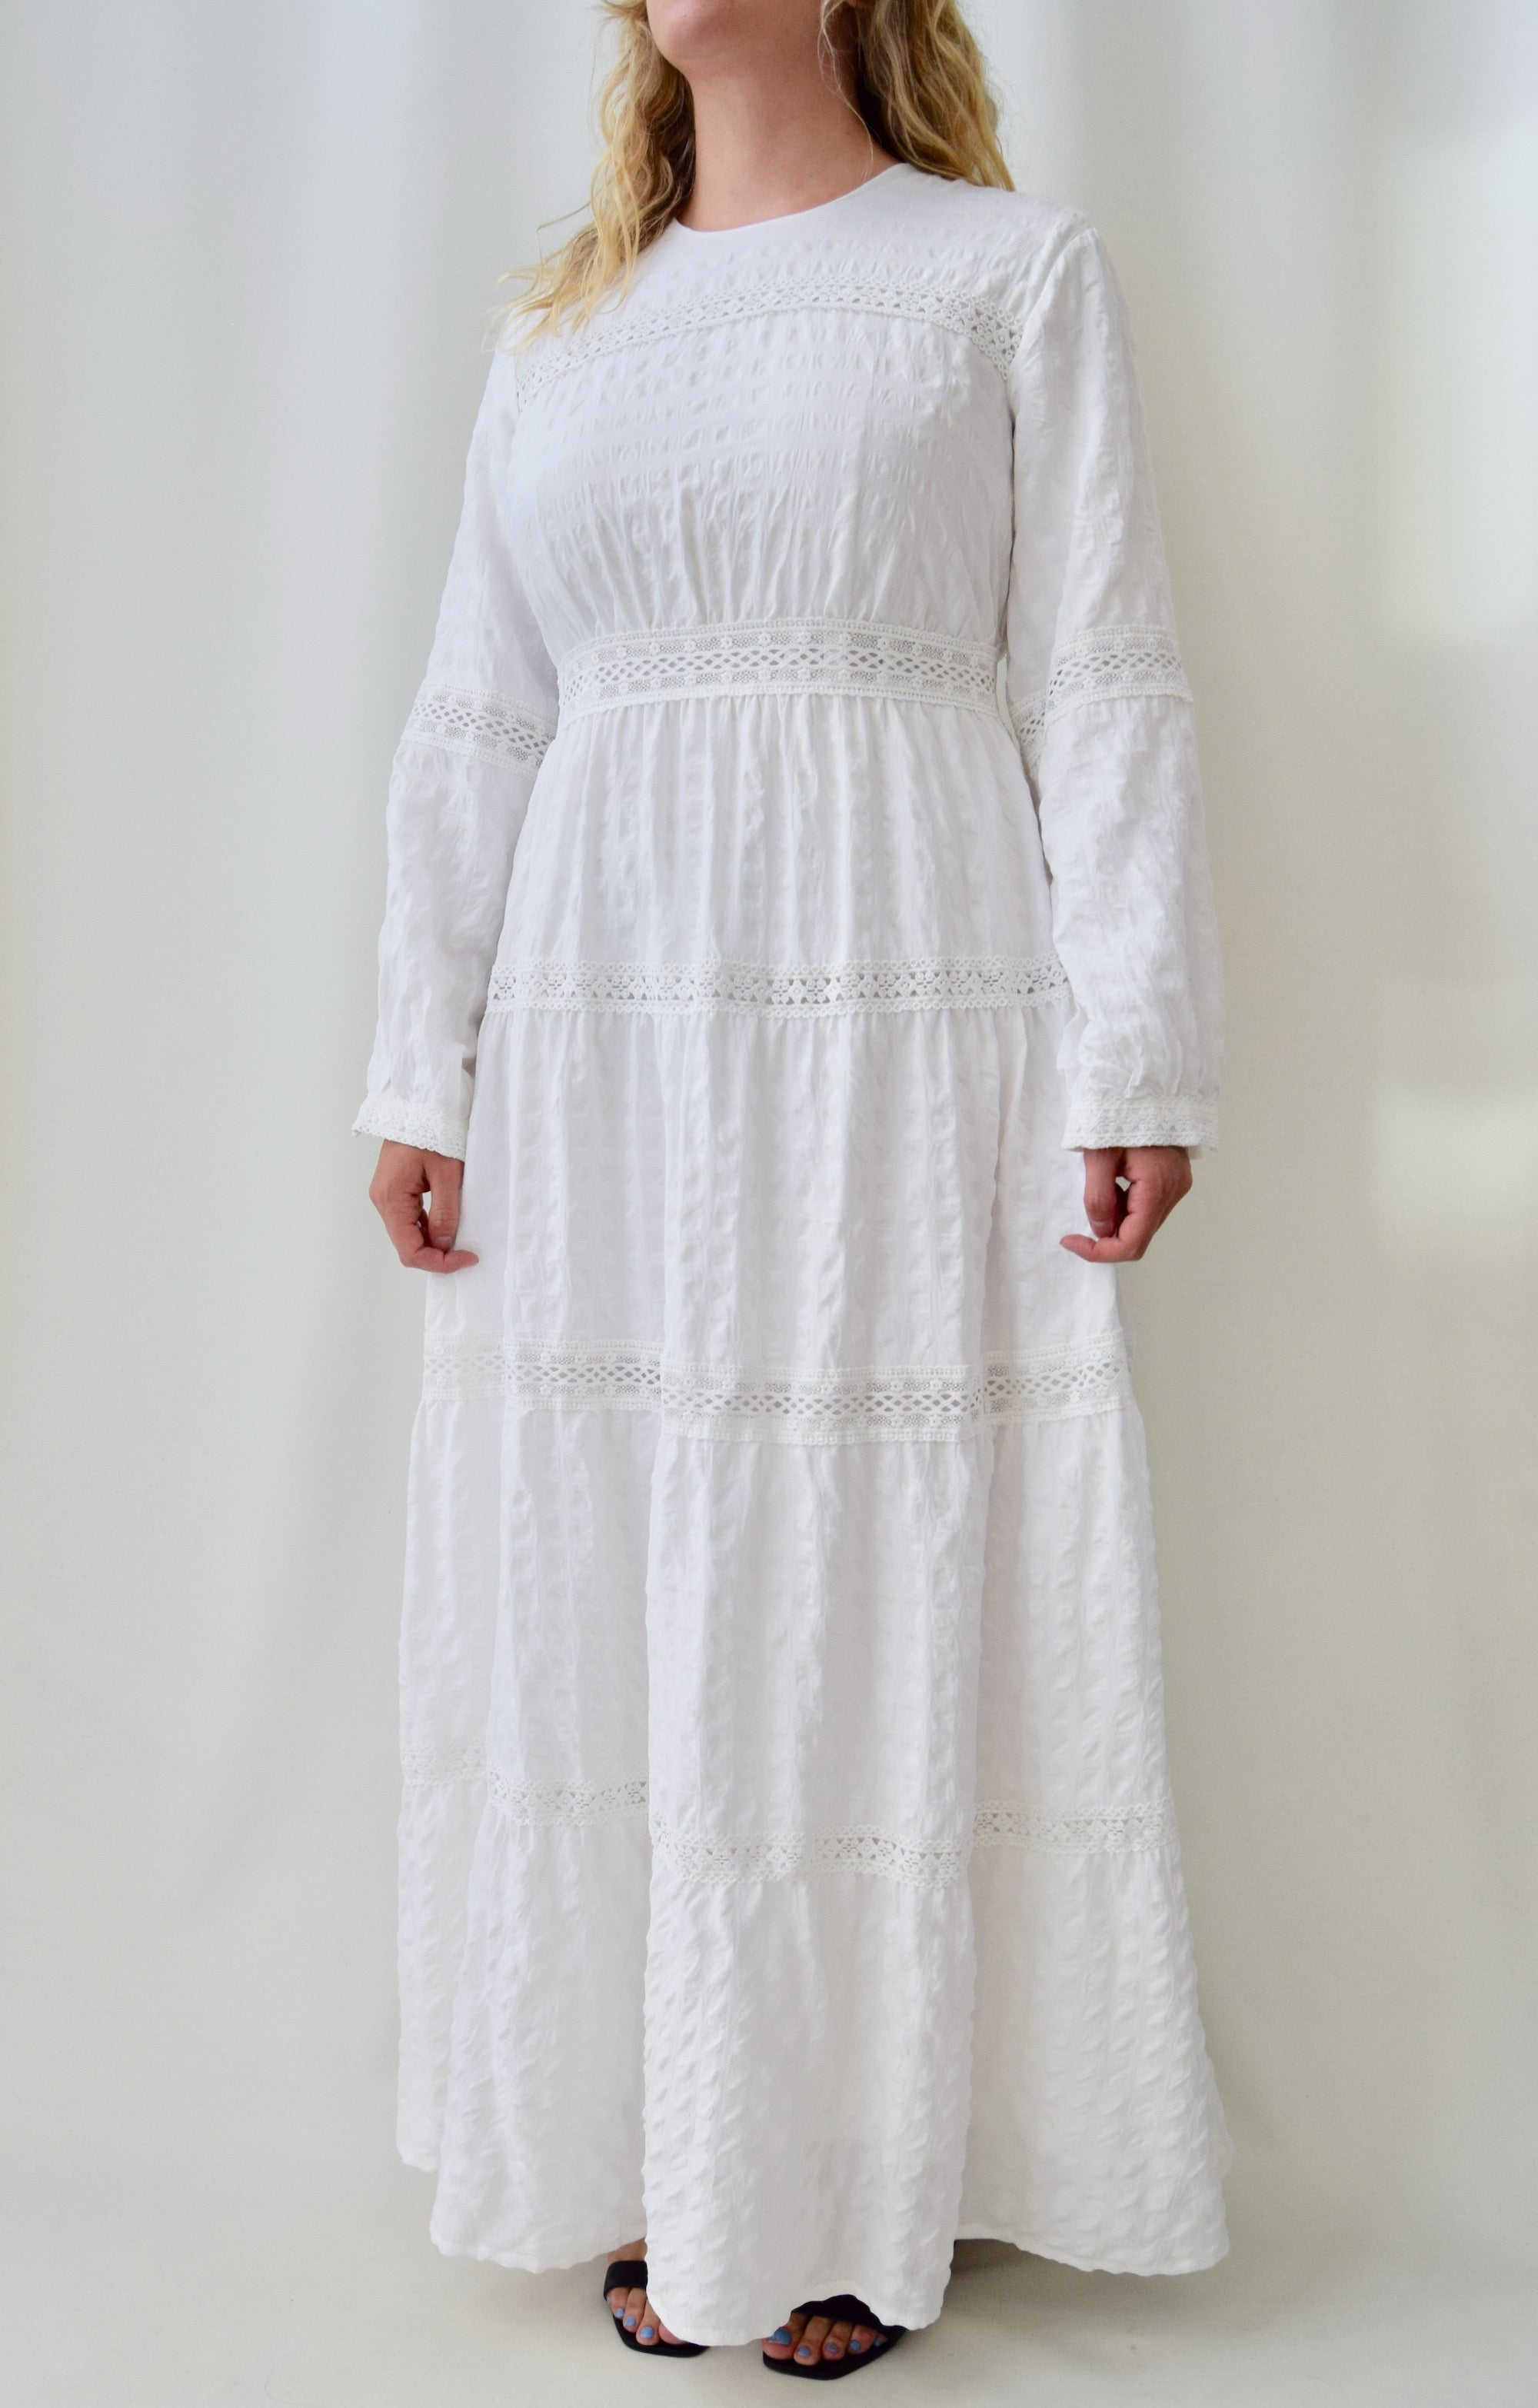 Midsommar Cult Dress